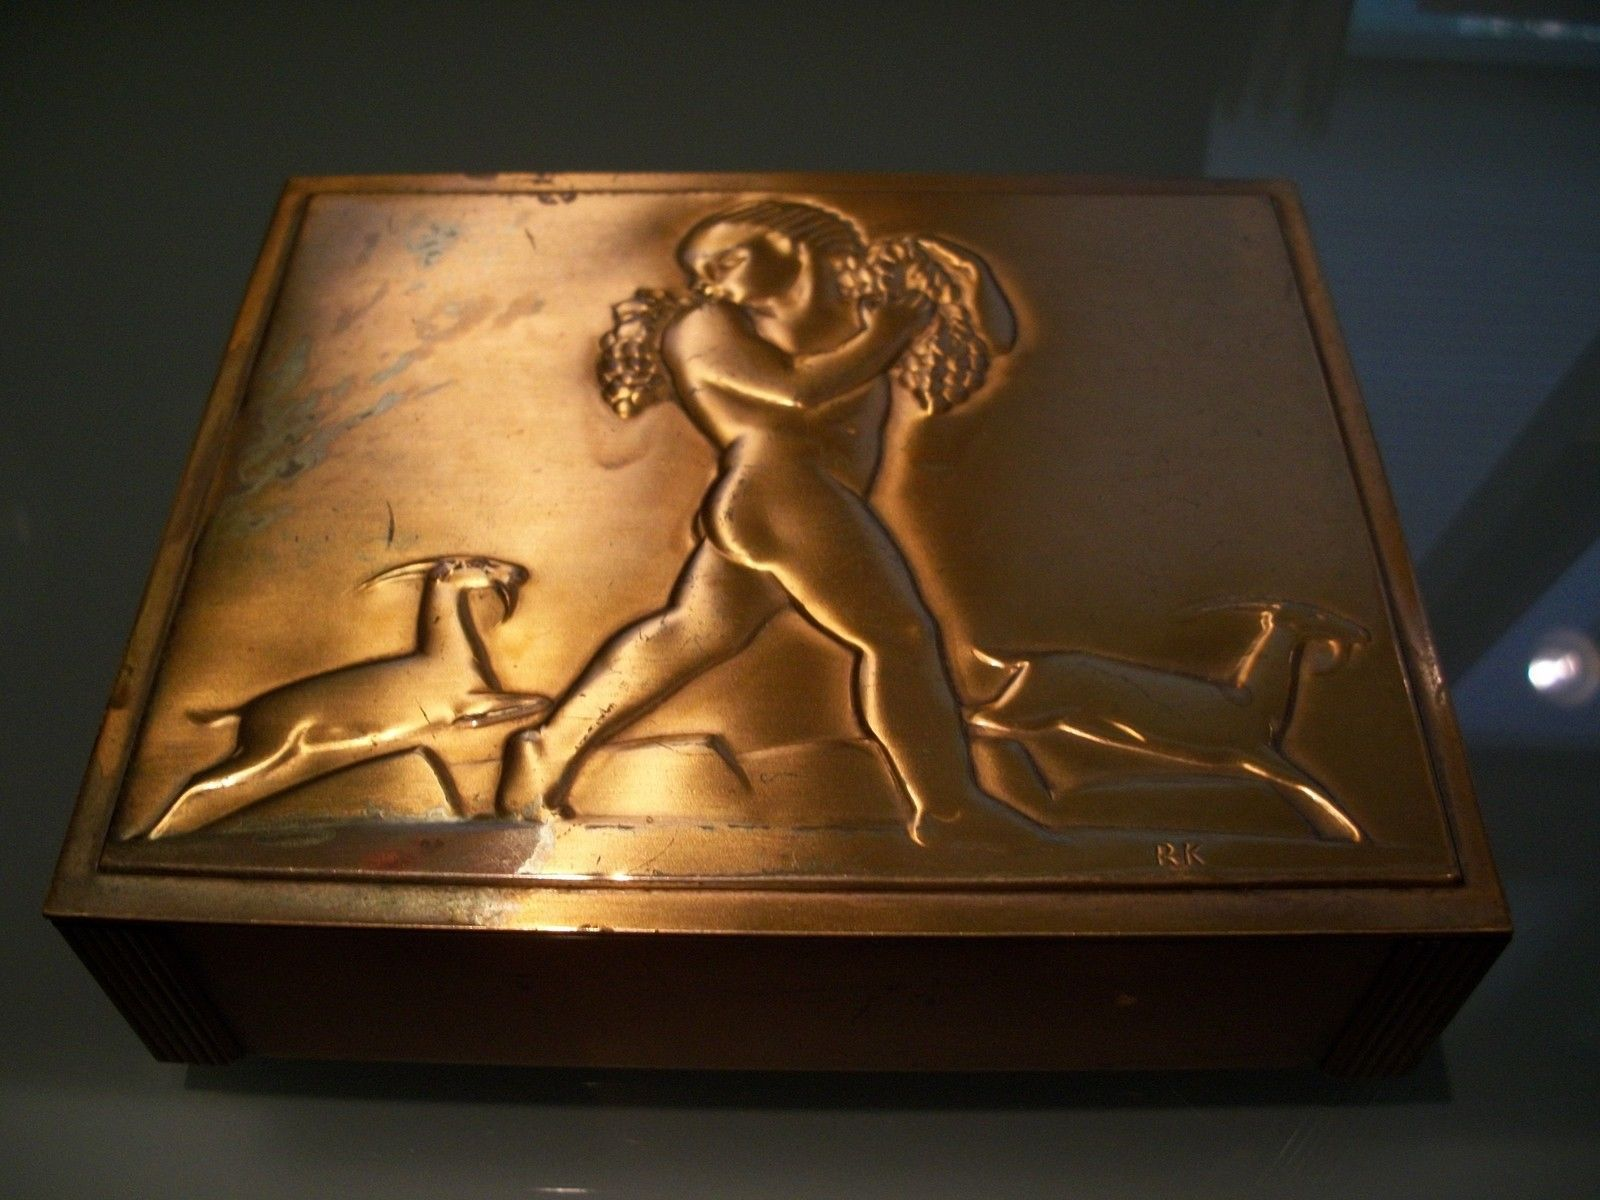 Rockwell kent rare antique bronze metal chase box art deco nude sculpture signed ebay